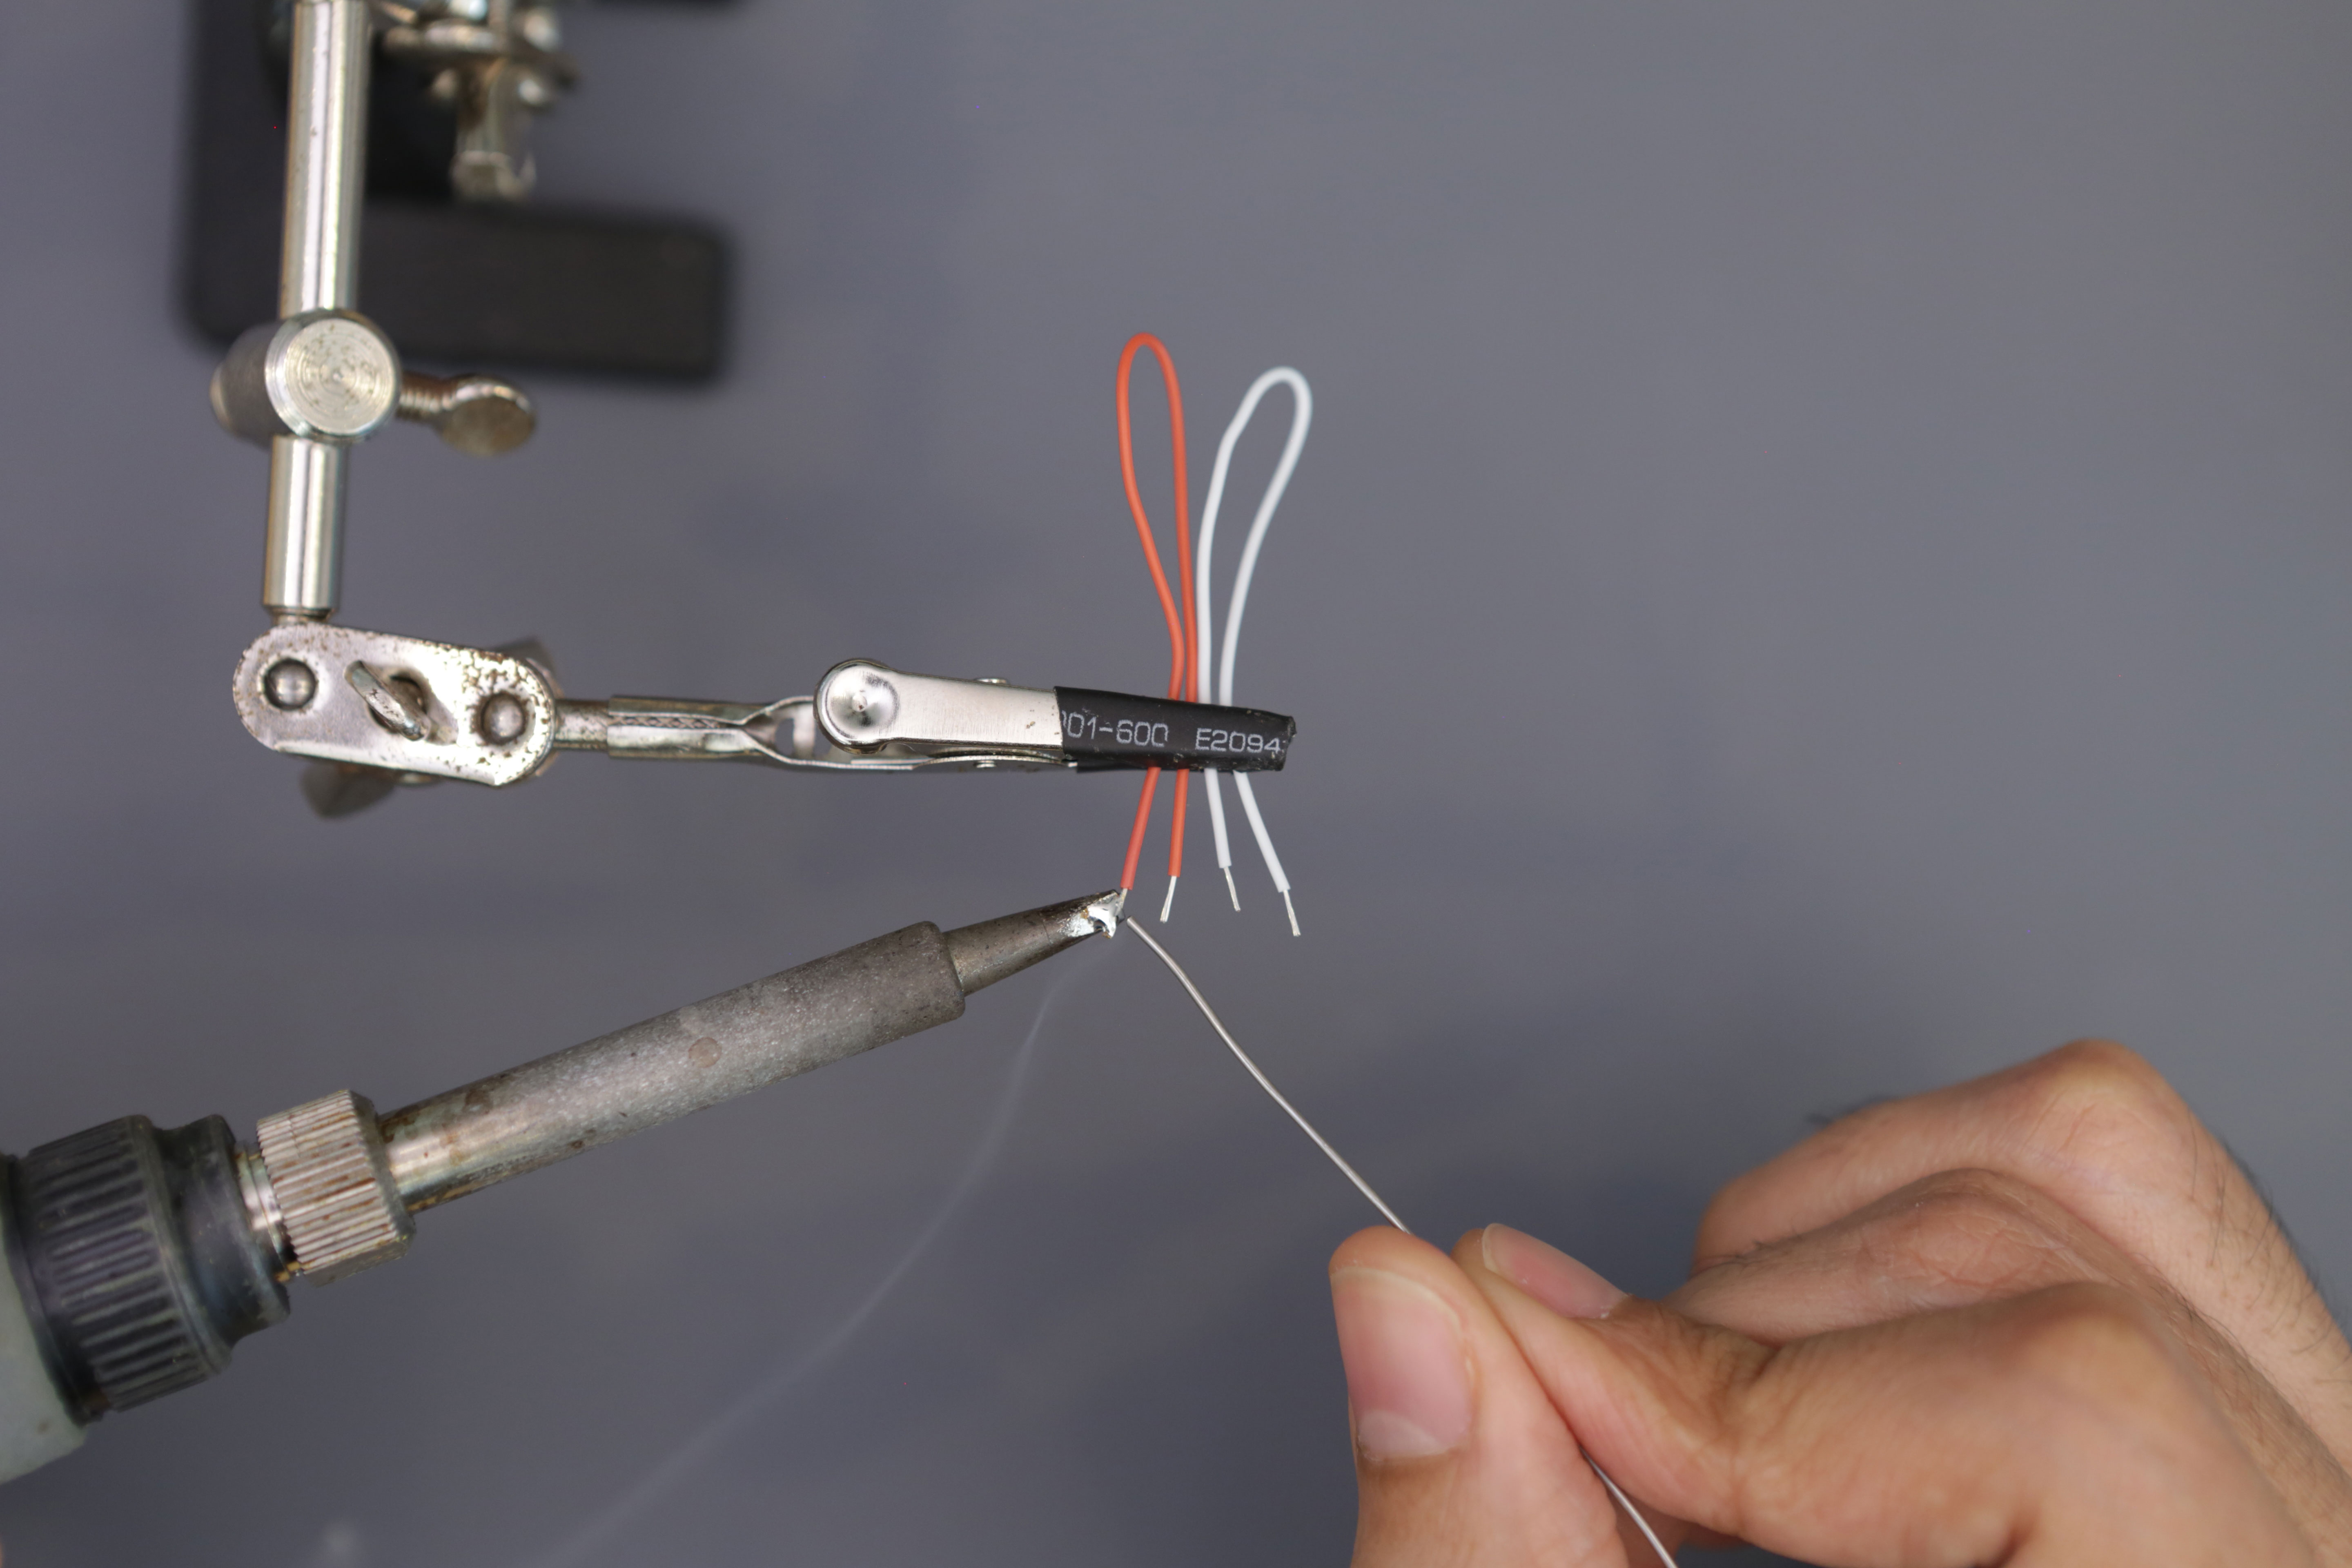 3d_printing_switch-wires-tinning.jpg